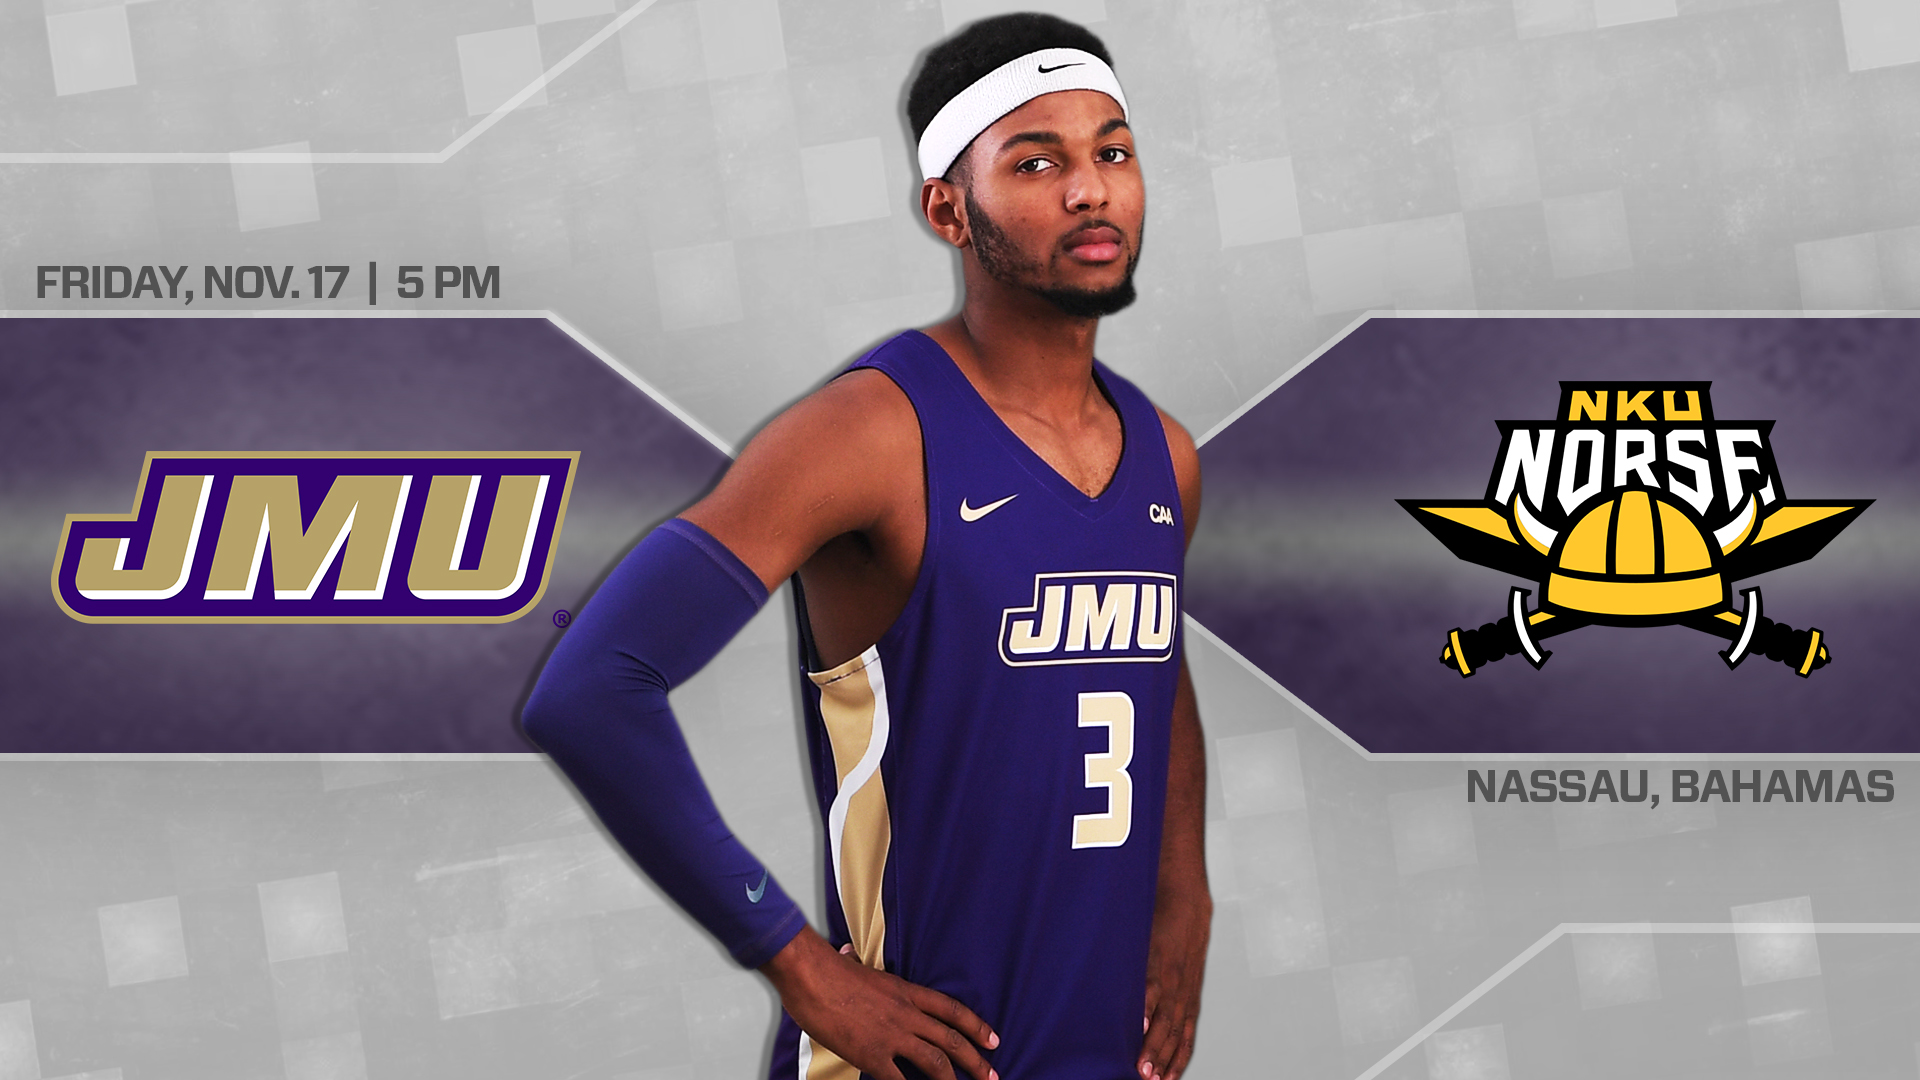 Men's Basketball: Dukes Set For The Islands Of The Bahamas Showcase)